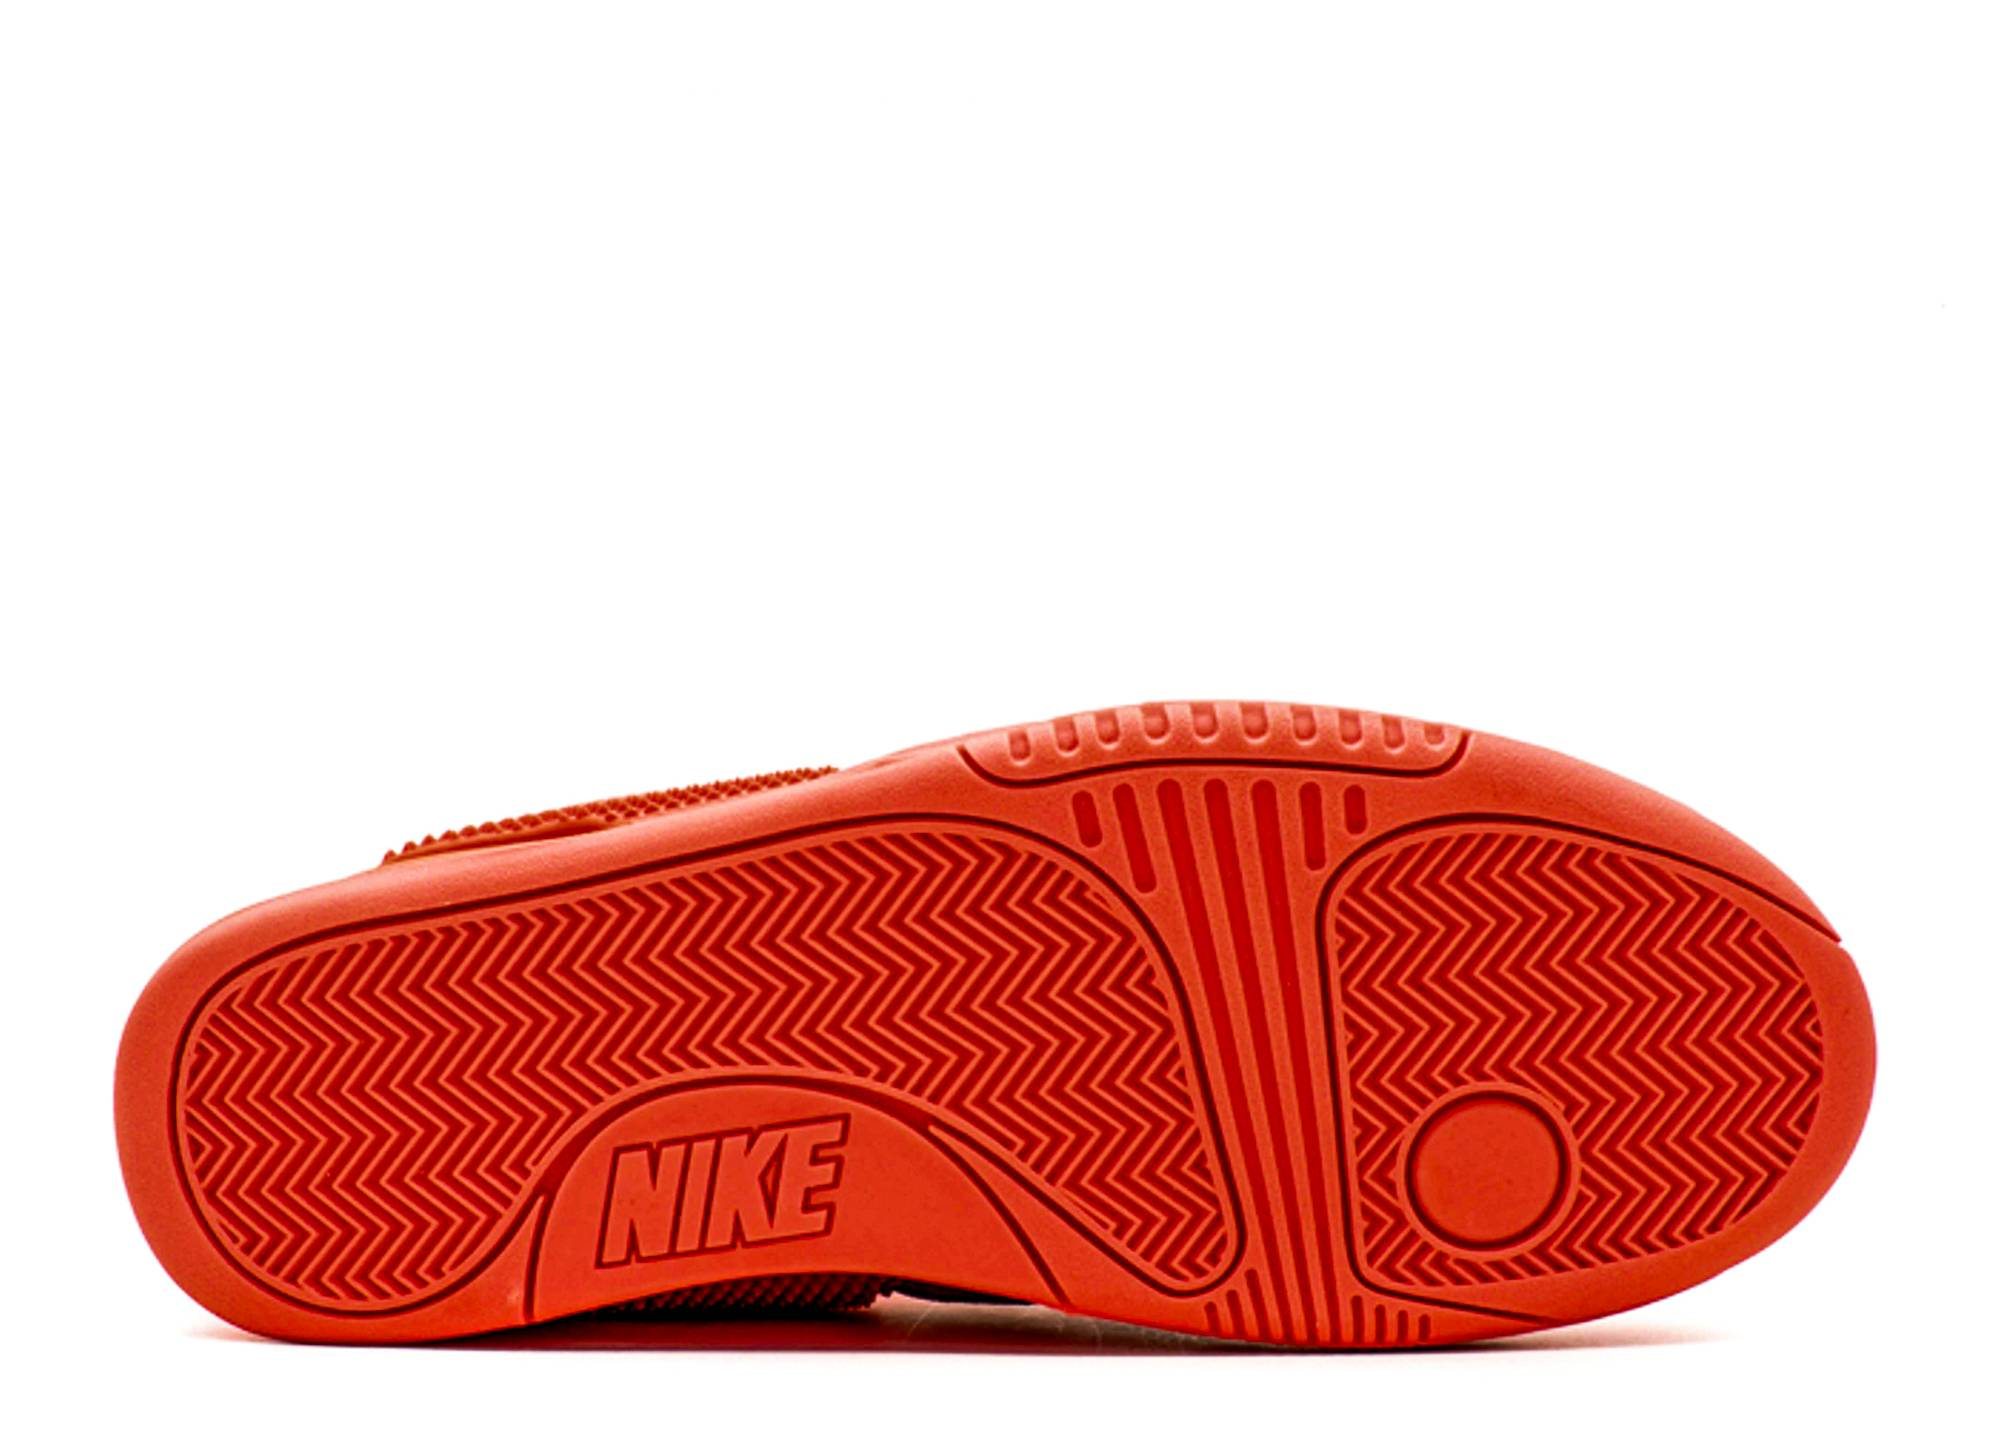 dfe78c12d0 Red October Yeezy Sample For Sale